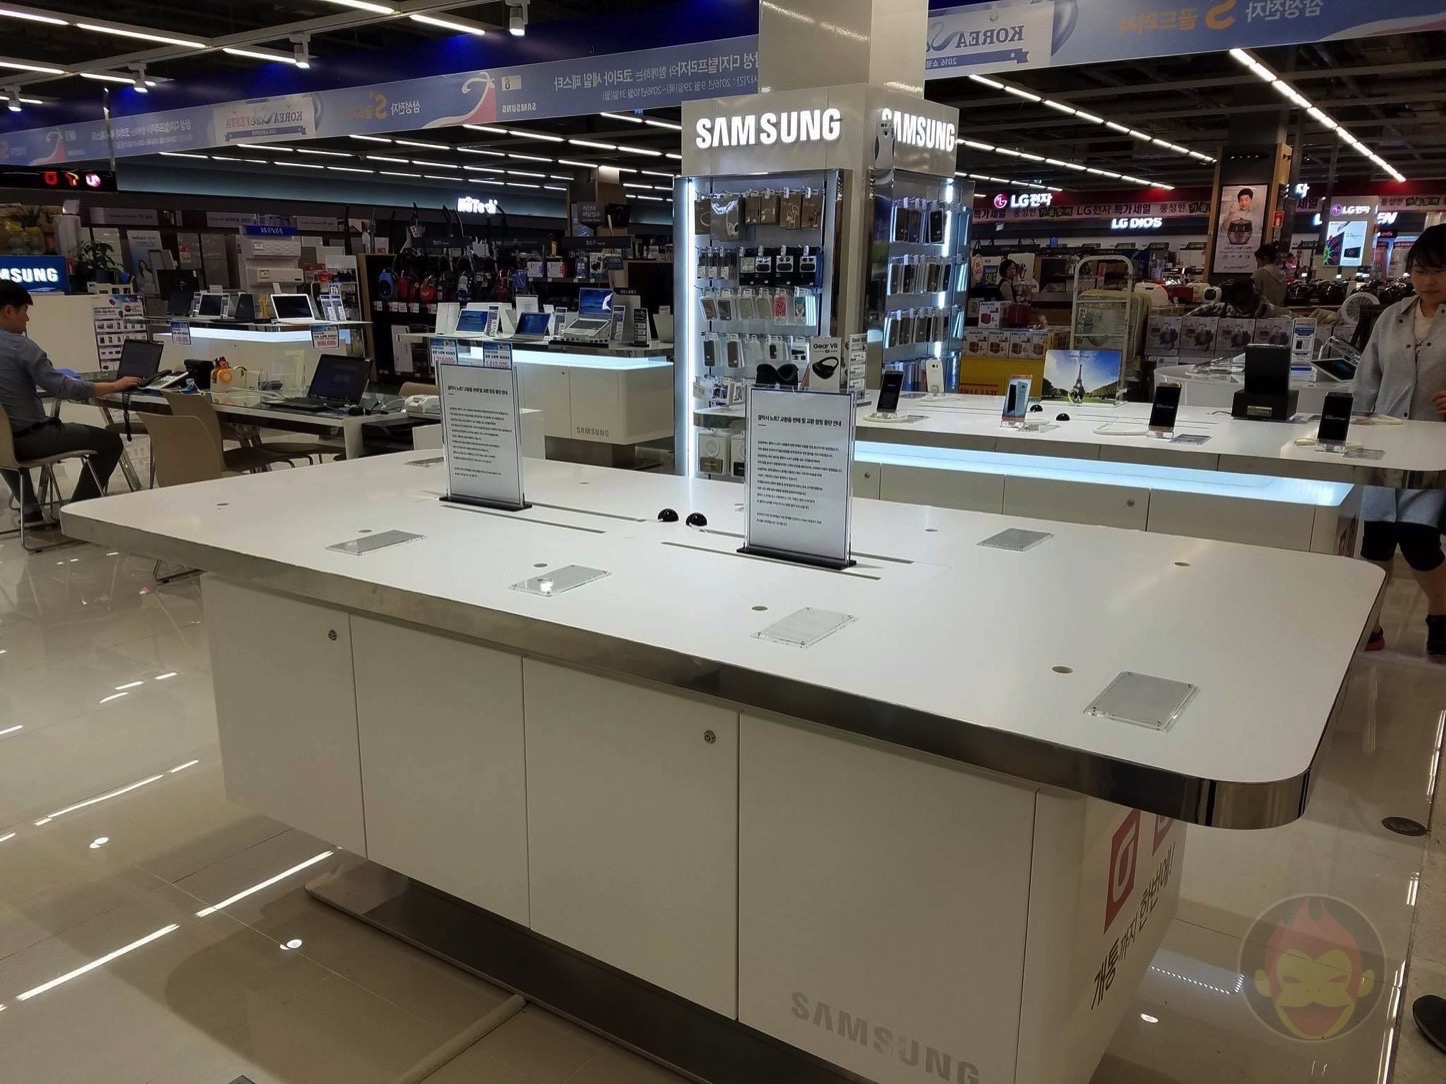 Samsung Note 7 Booth Empty 01